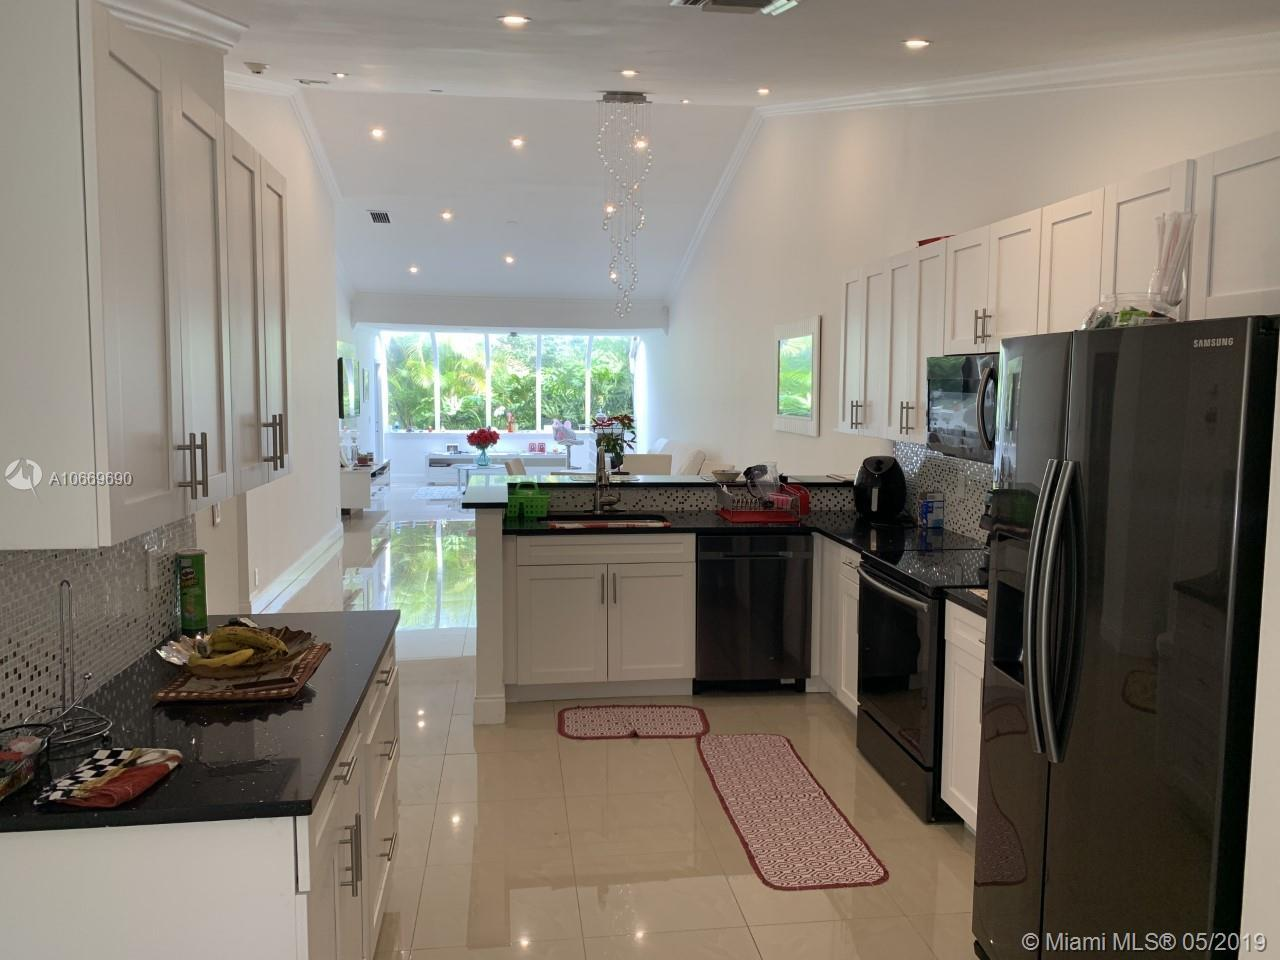 Lovely Villa at Boca Pointe. Gated community, pool, hat tub and clubhouse. HOA includes Roof replace